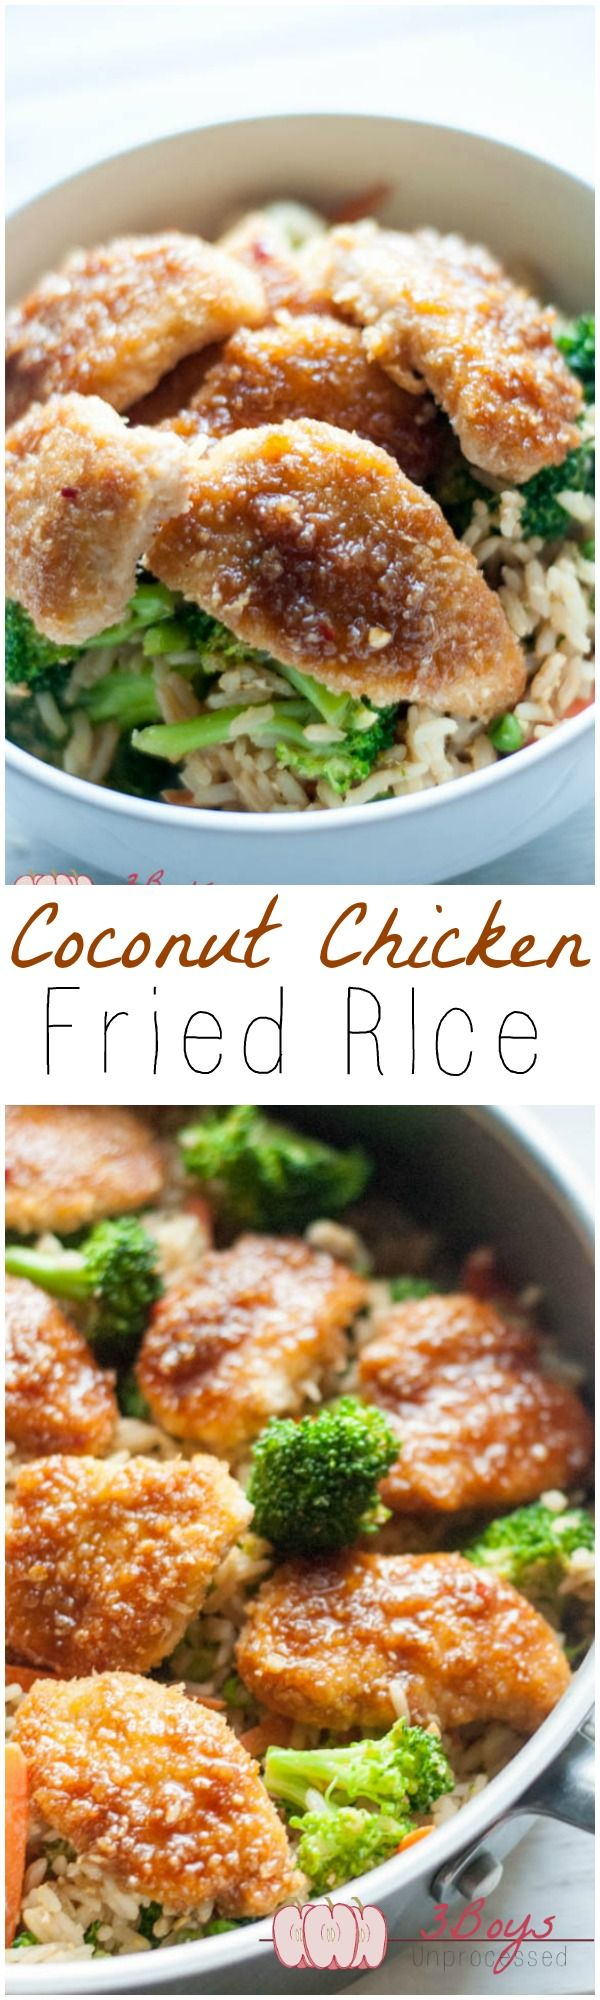 COCONUT CHICKEN FRIED RICE